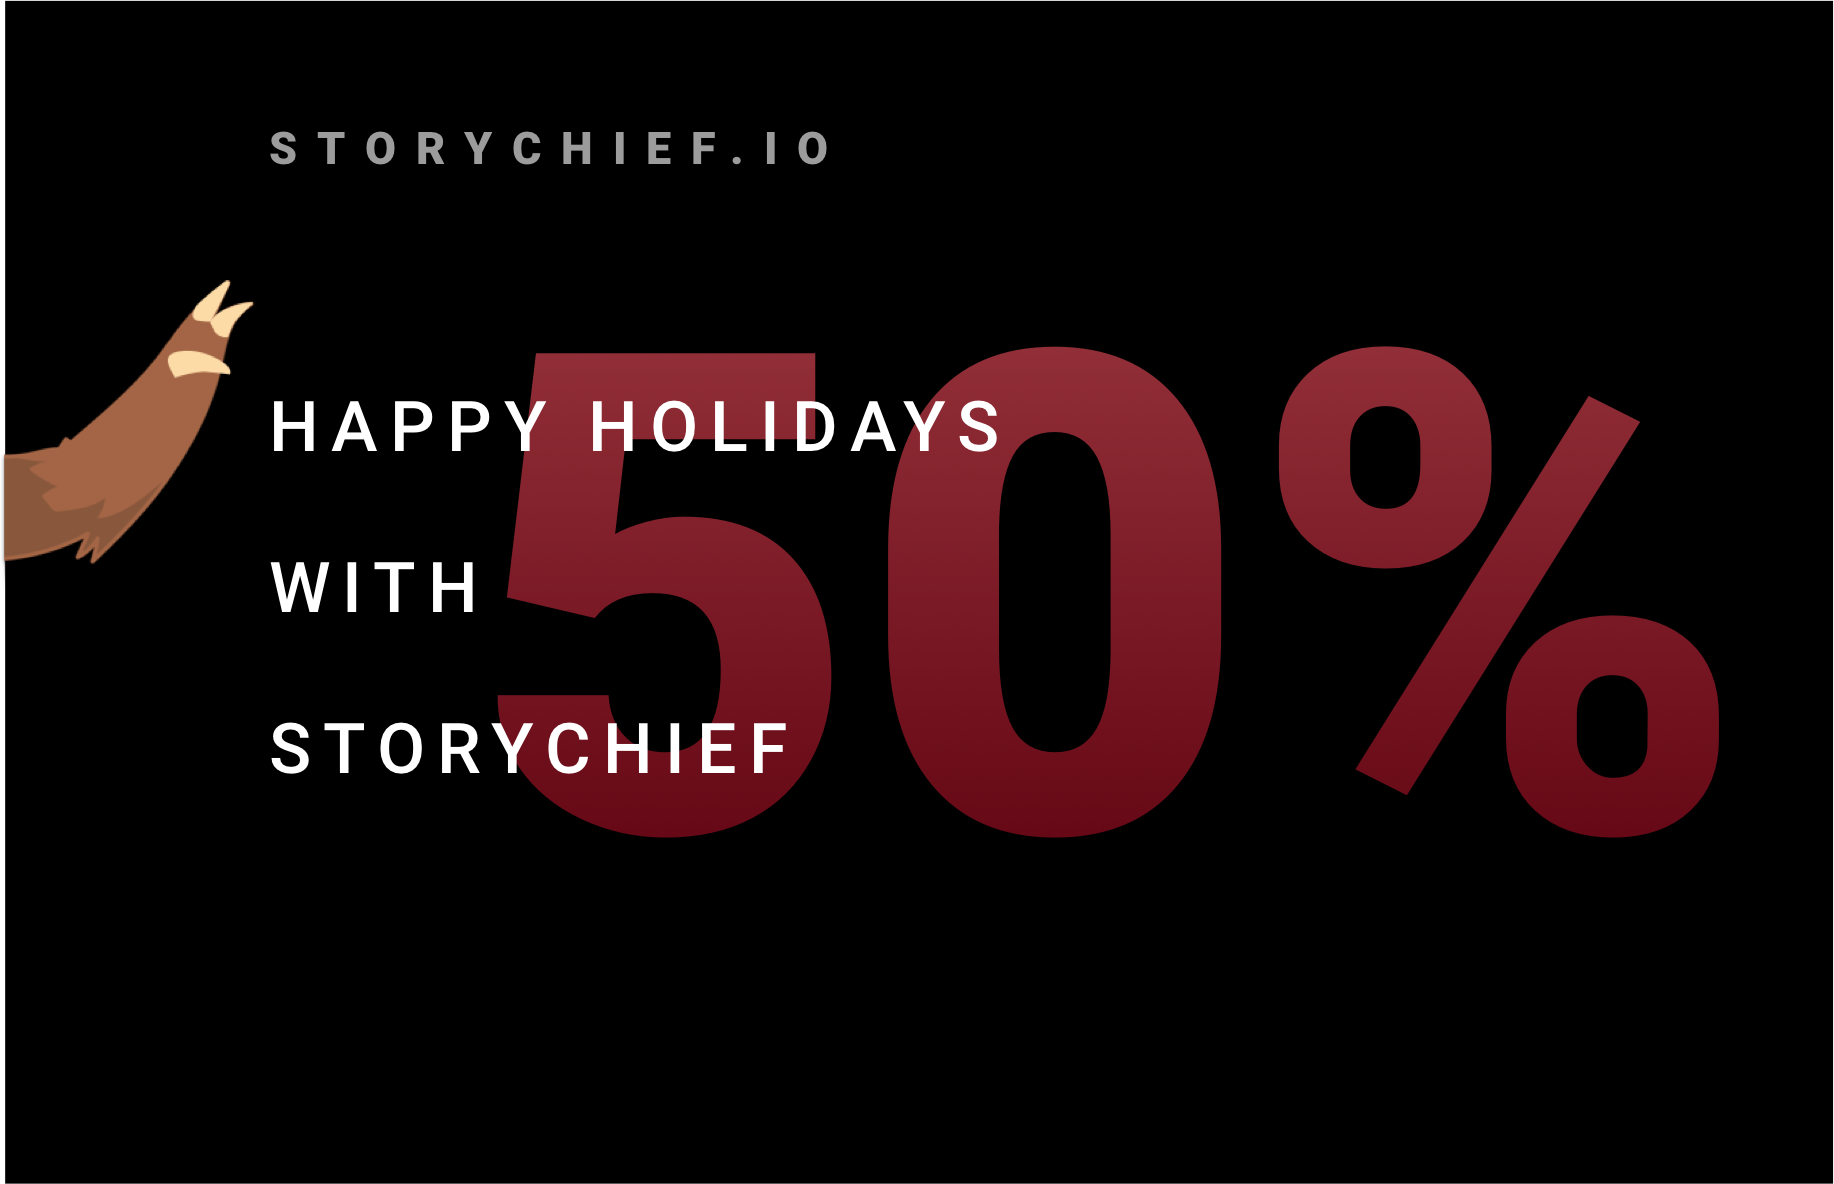 xmas-storychief-discount-coupon